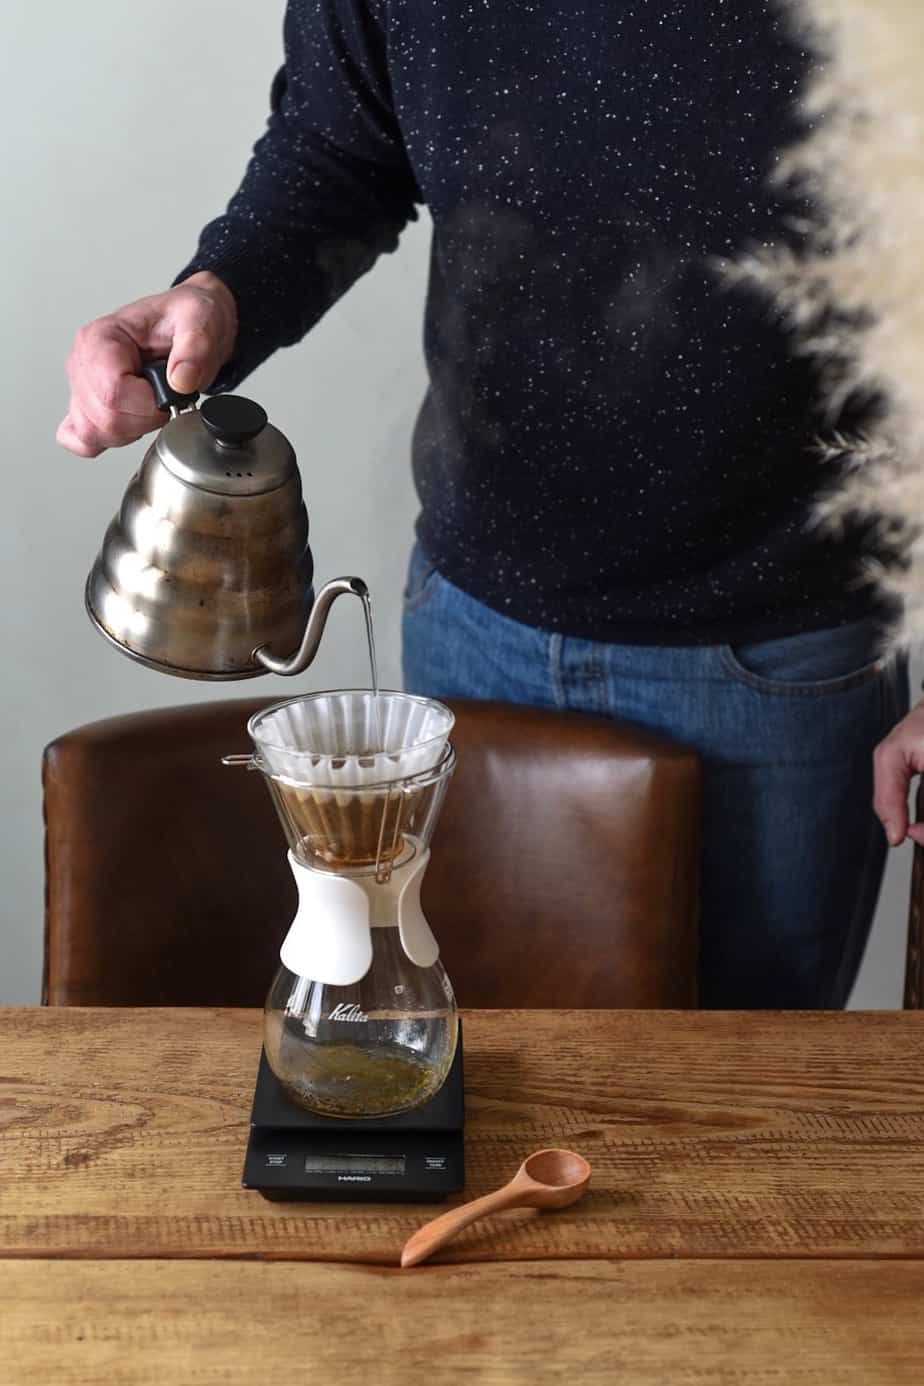 The Top 10 Best Pour Over Coffee Makers of 2019 - Turntable Kitchen